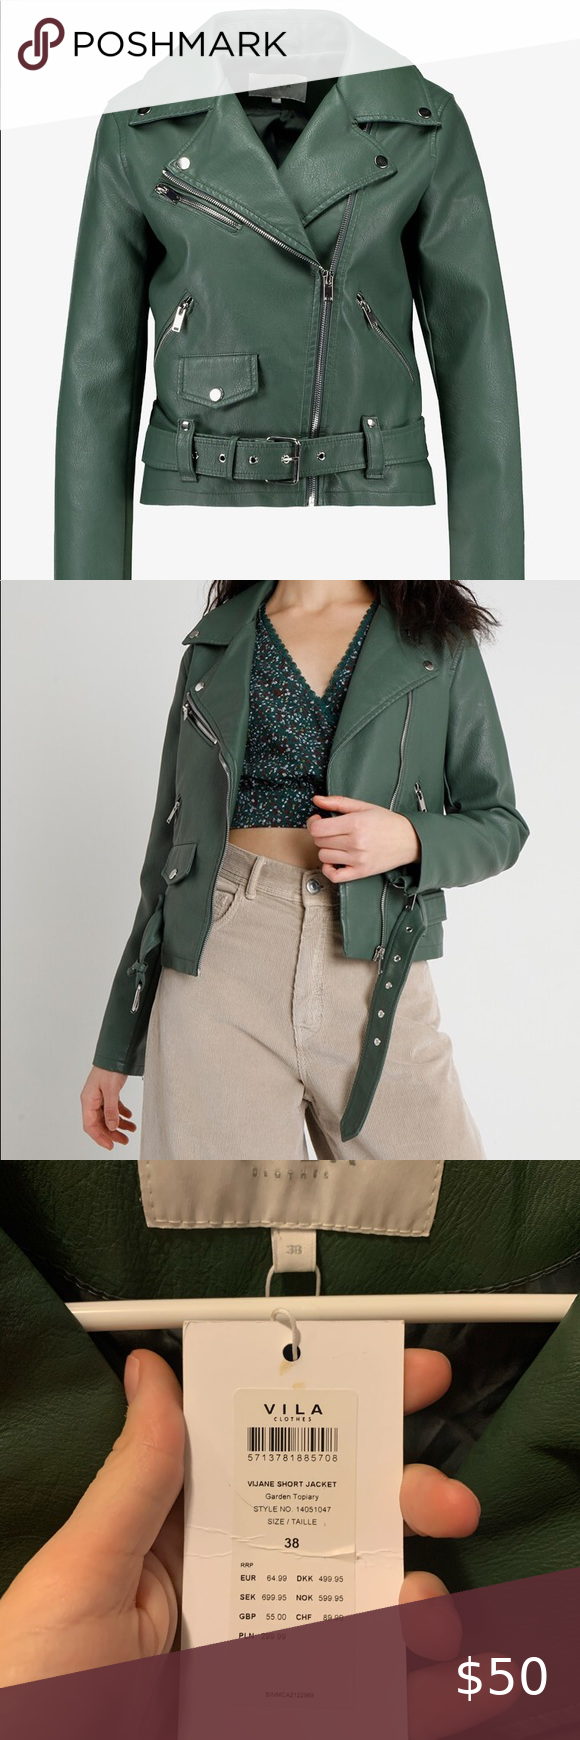 Olive Green Faux Leather Jacket Green Faux Leather Jacket Faux Leather Jackets Leather Jacket [ 1740 x 580 Pixel ]